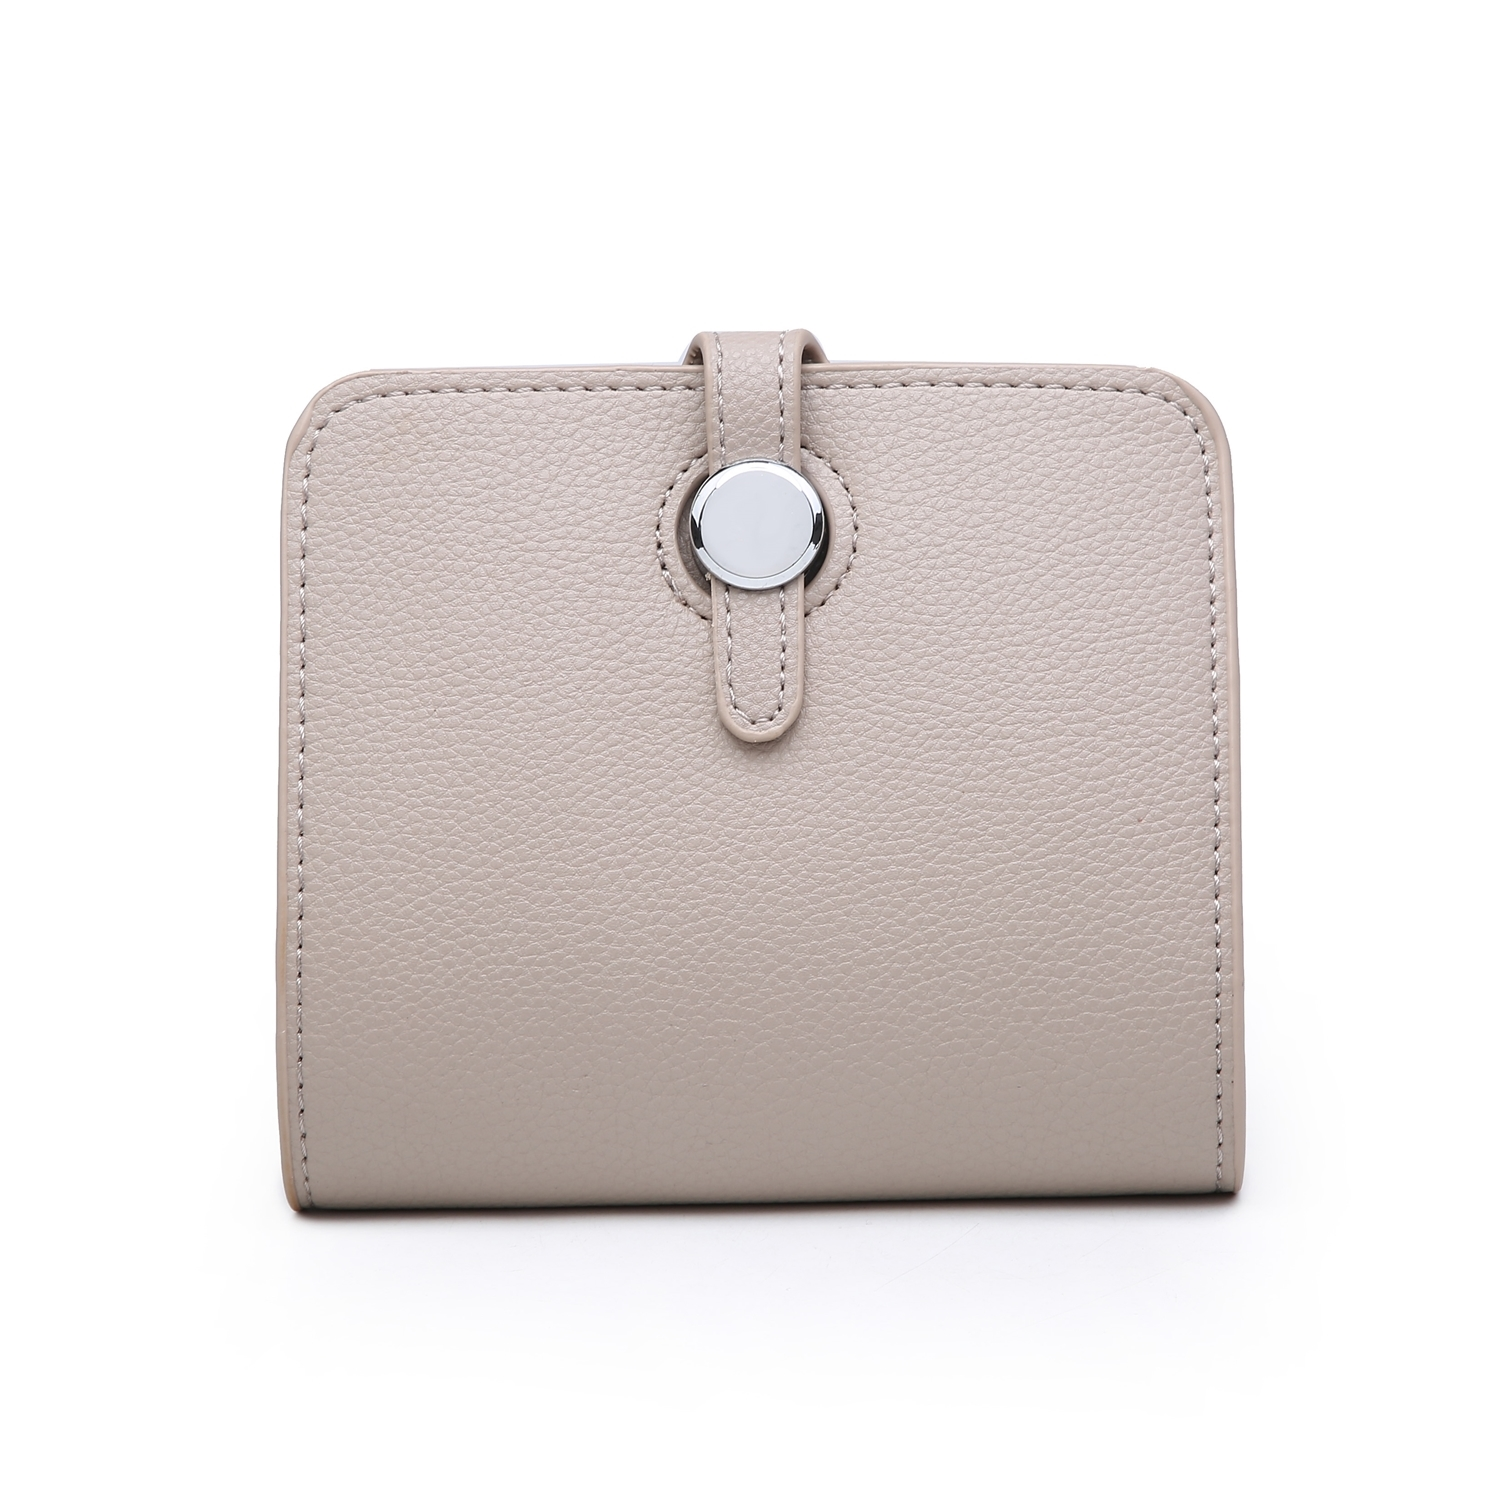 7150 HOM Purse & Card Holder